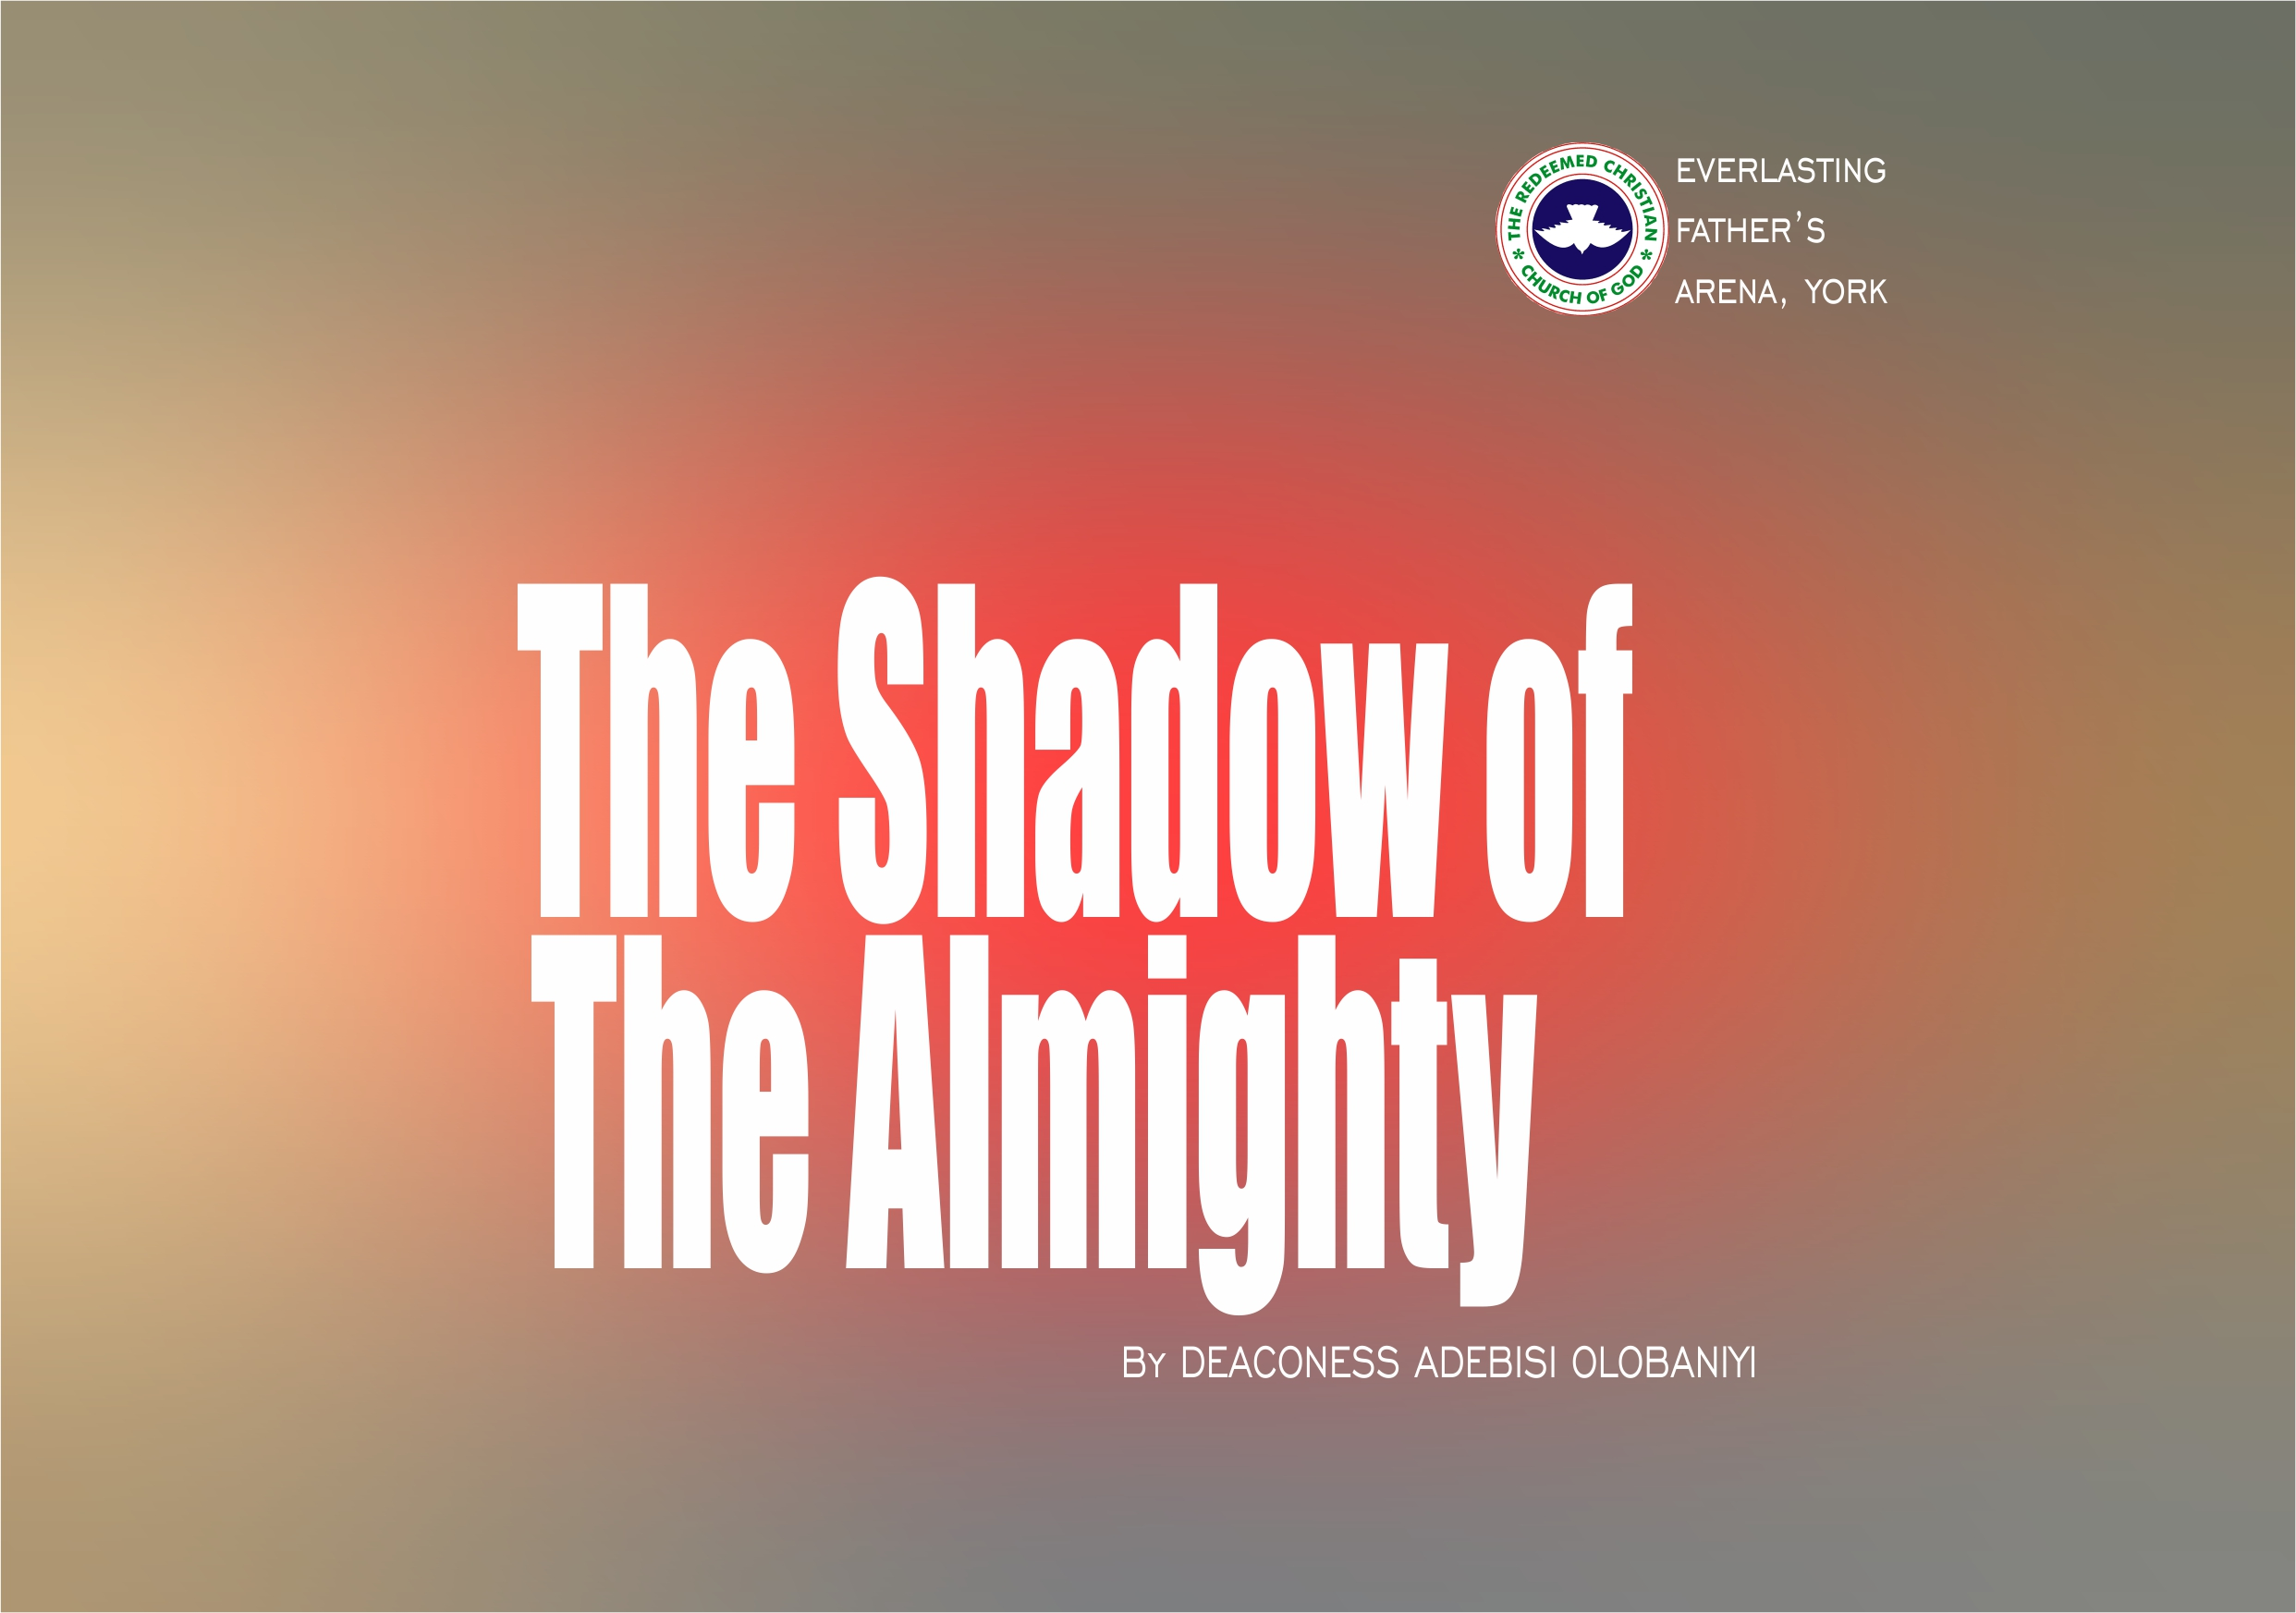 The Shadow of the Almighty, by Deaconess Adebisi Olobaniyi